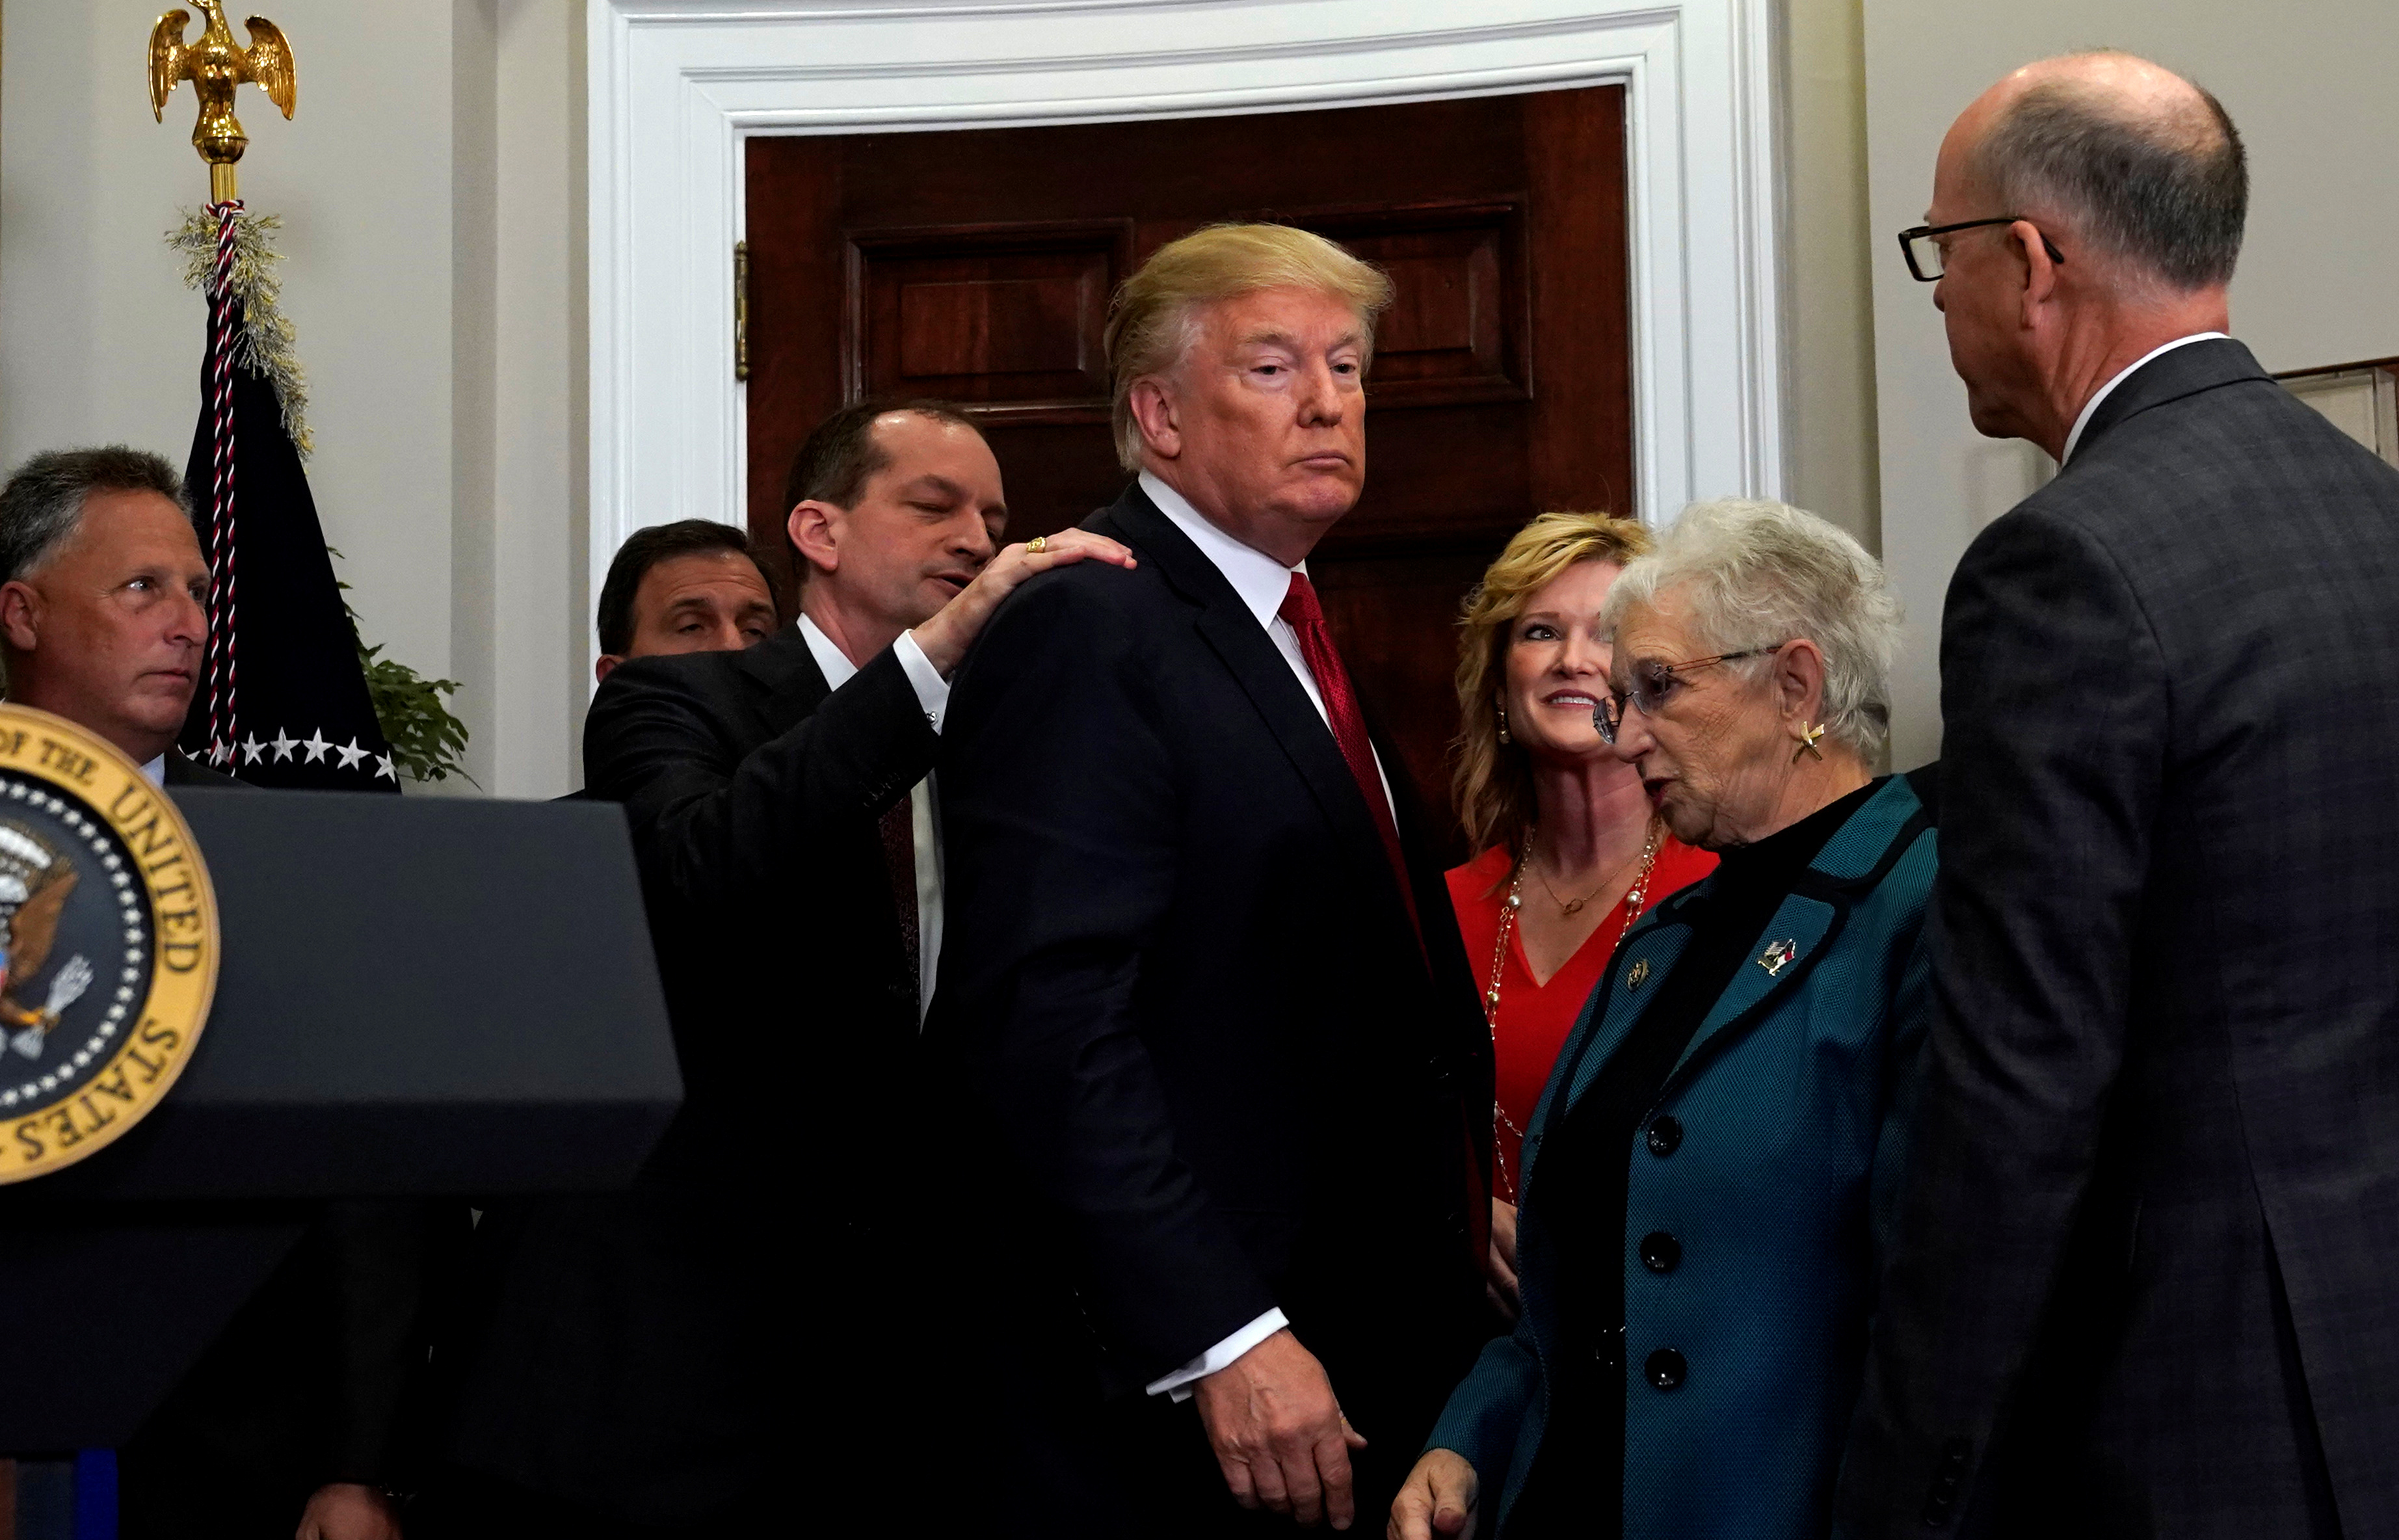 U.S. Labor Secretary Alexander Acosta puts his hand on the shoulder of U.S. President Donald Trump to prevent him from leaving the room after Trump forgot to sign an executive order on healthcare at the White House in Washington, U.S., October 12, 2017. REUTERS/Kevin Lamarque